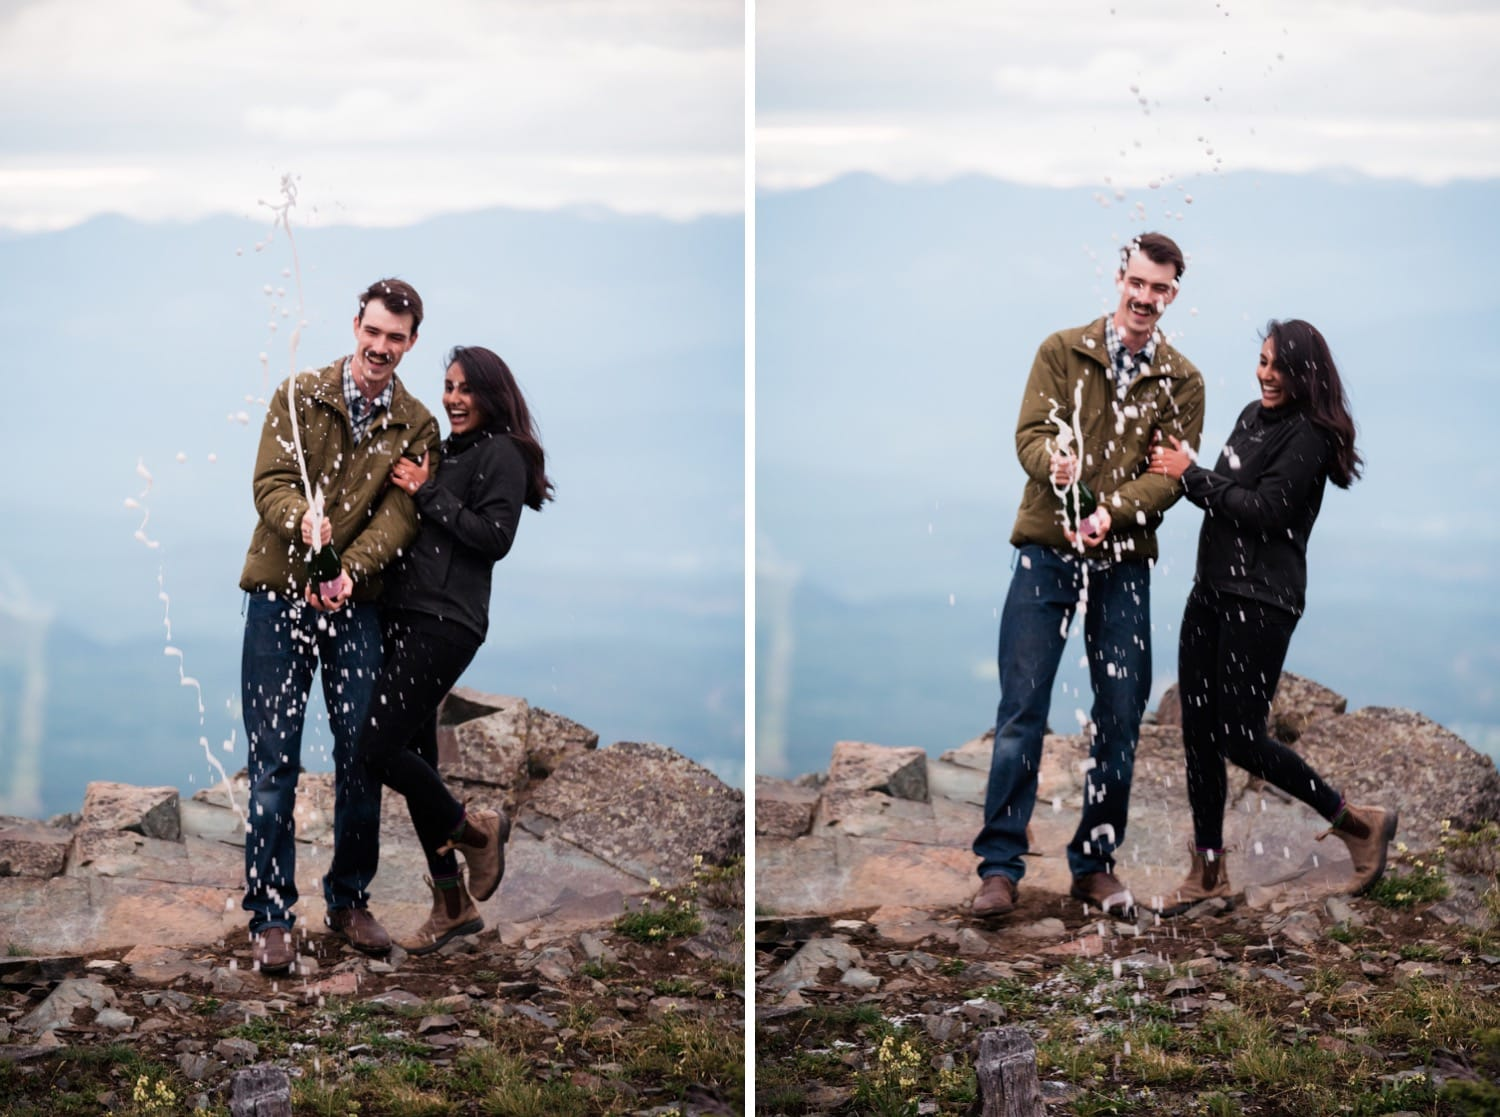 An adventurous couple in hiking gear laughs as they spray champagne from the bottle on top of a mountain outside of Cranbrook, BC